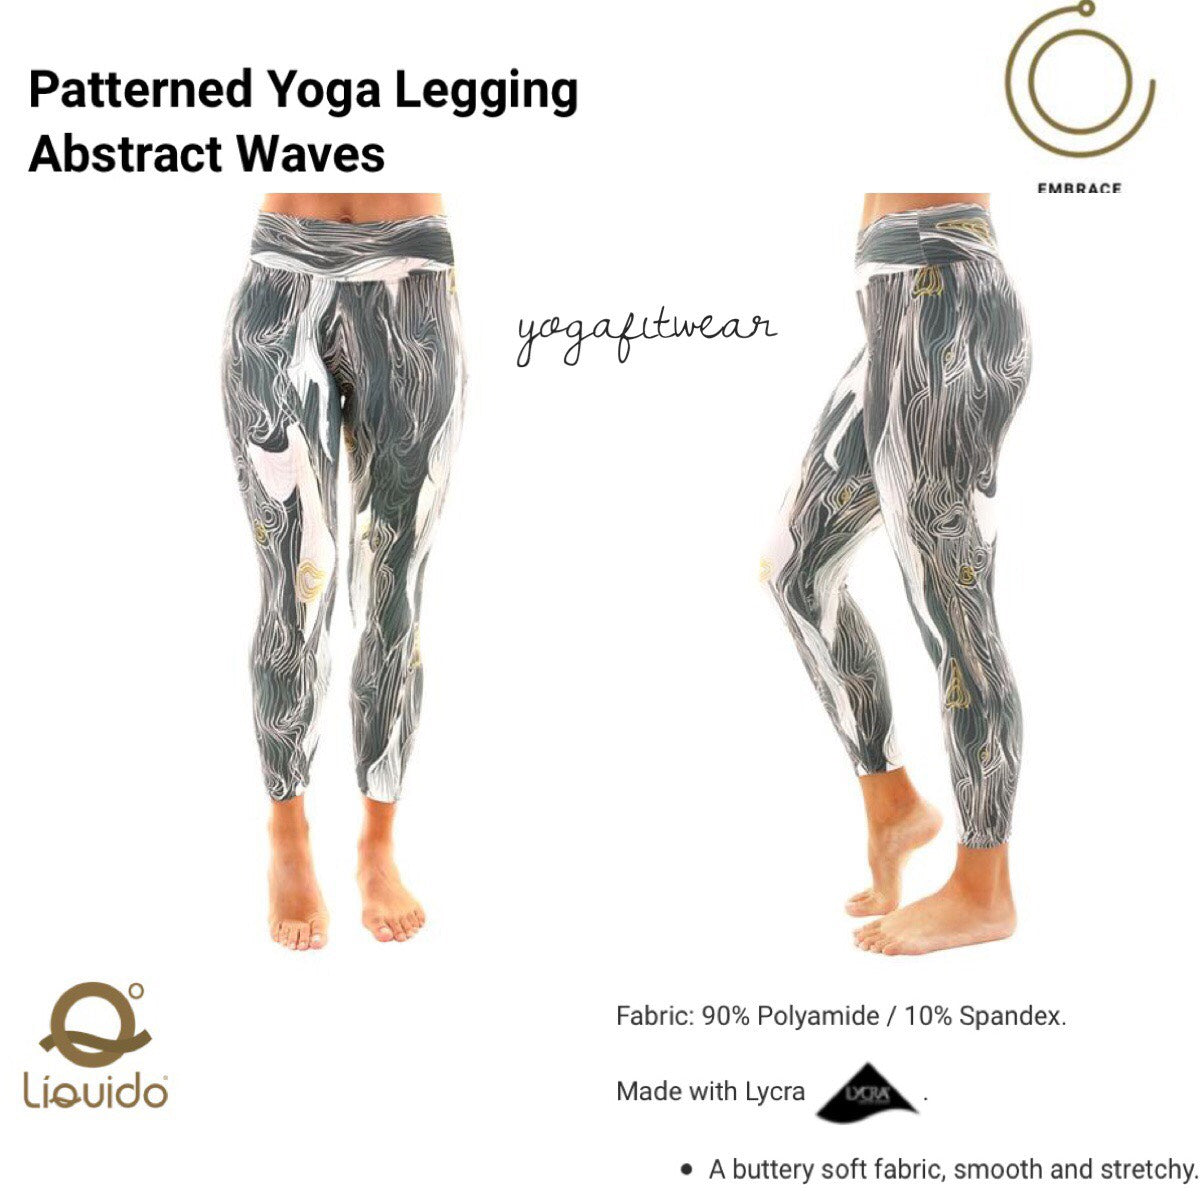 Liquido - Patterned Yoga Legging  : Abstract Waves (LQ00489)